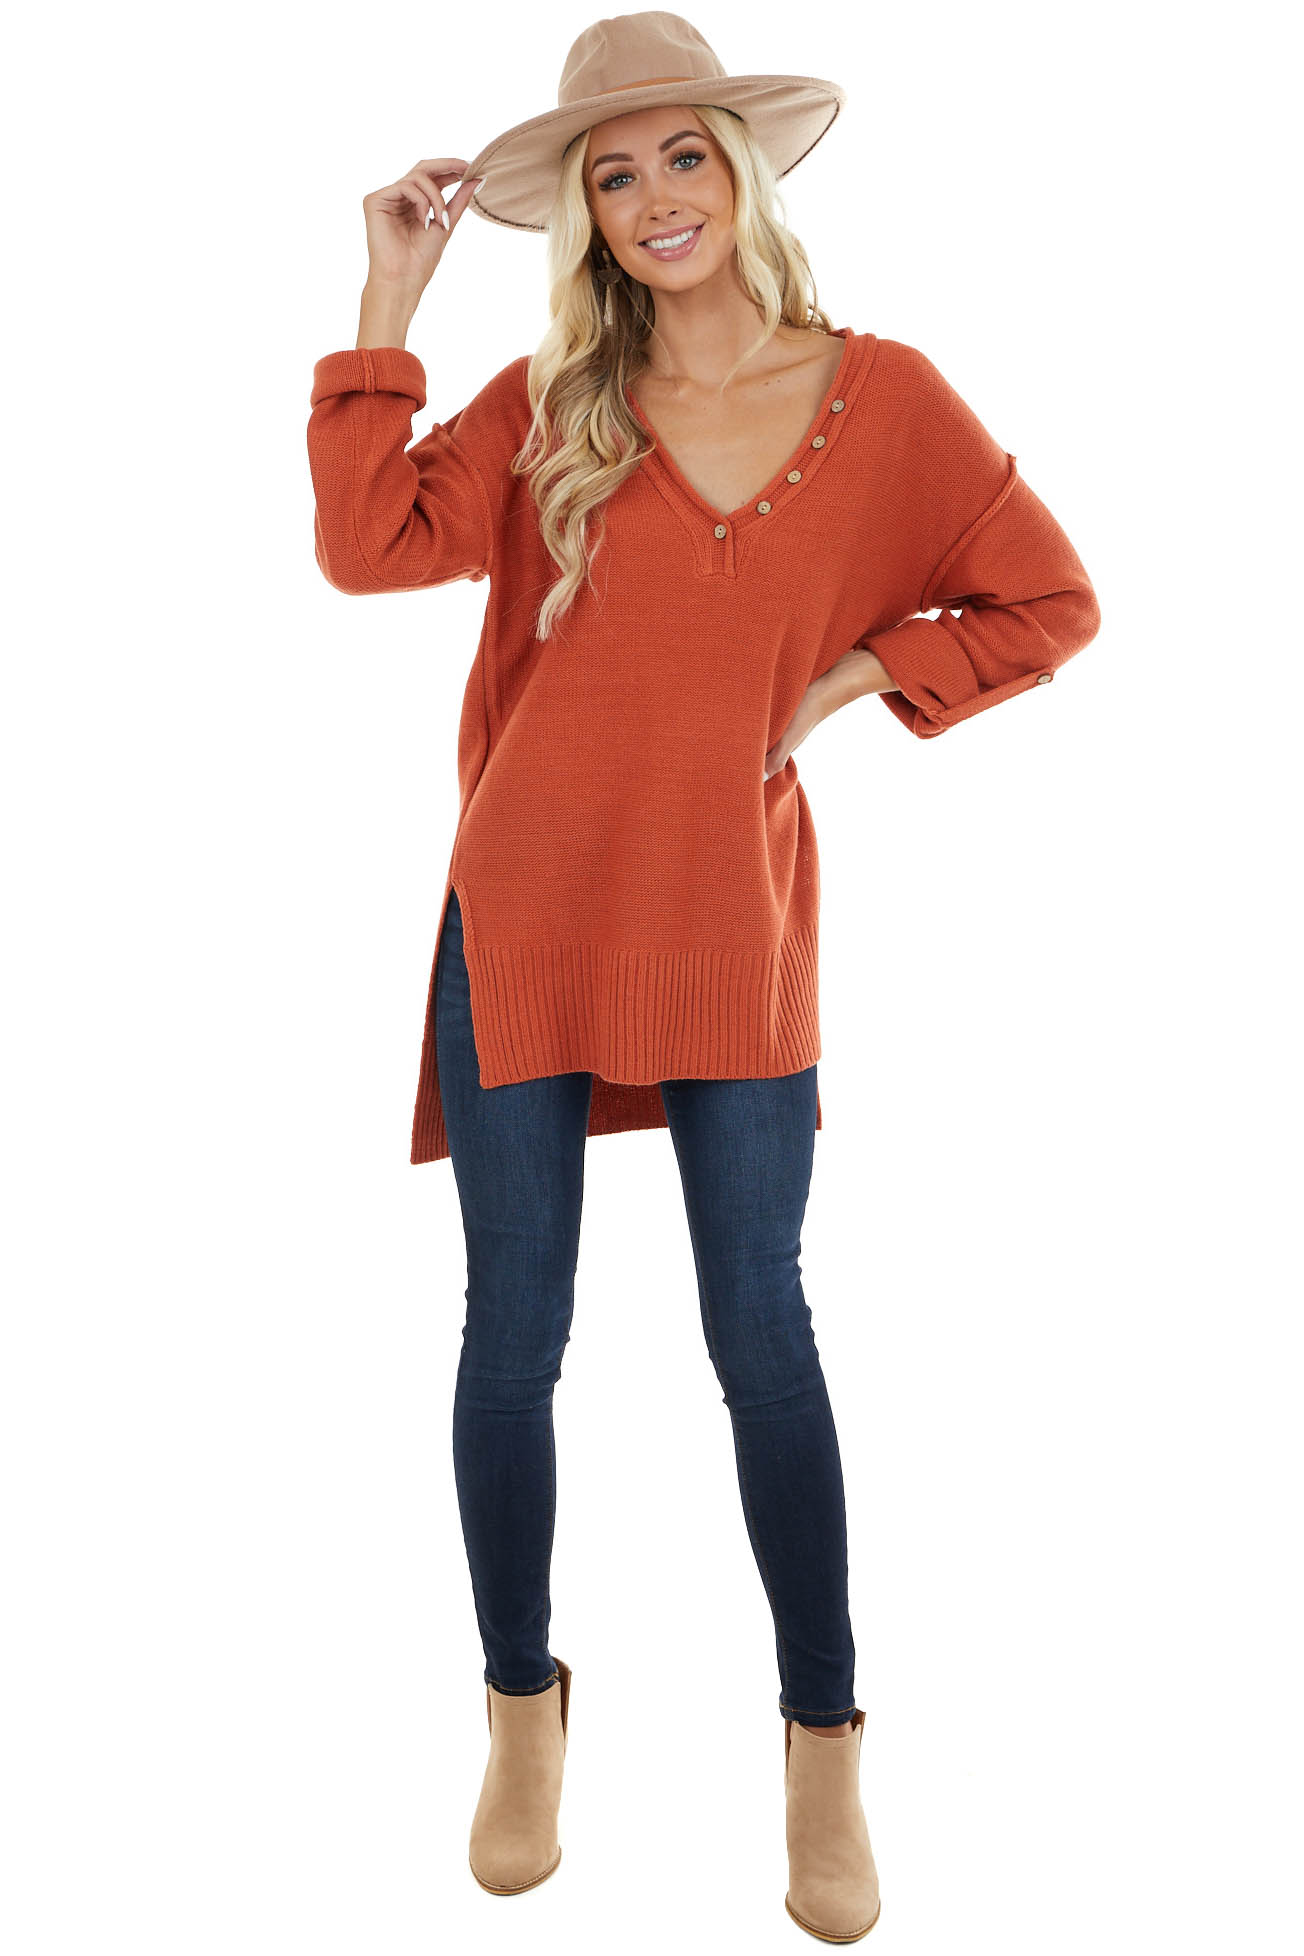 Terracotta V Neck Knit Sweater with Wood Button Details